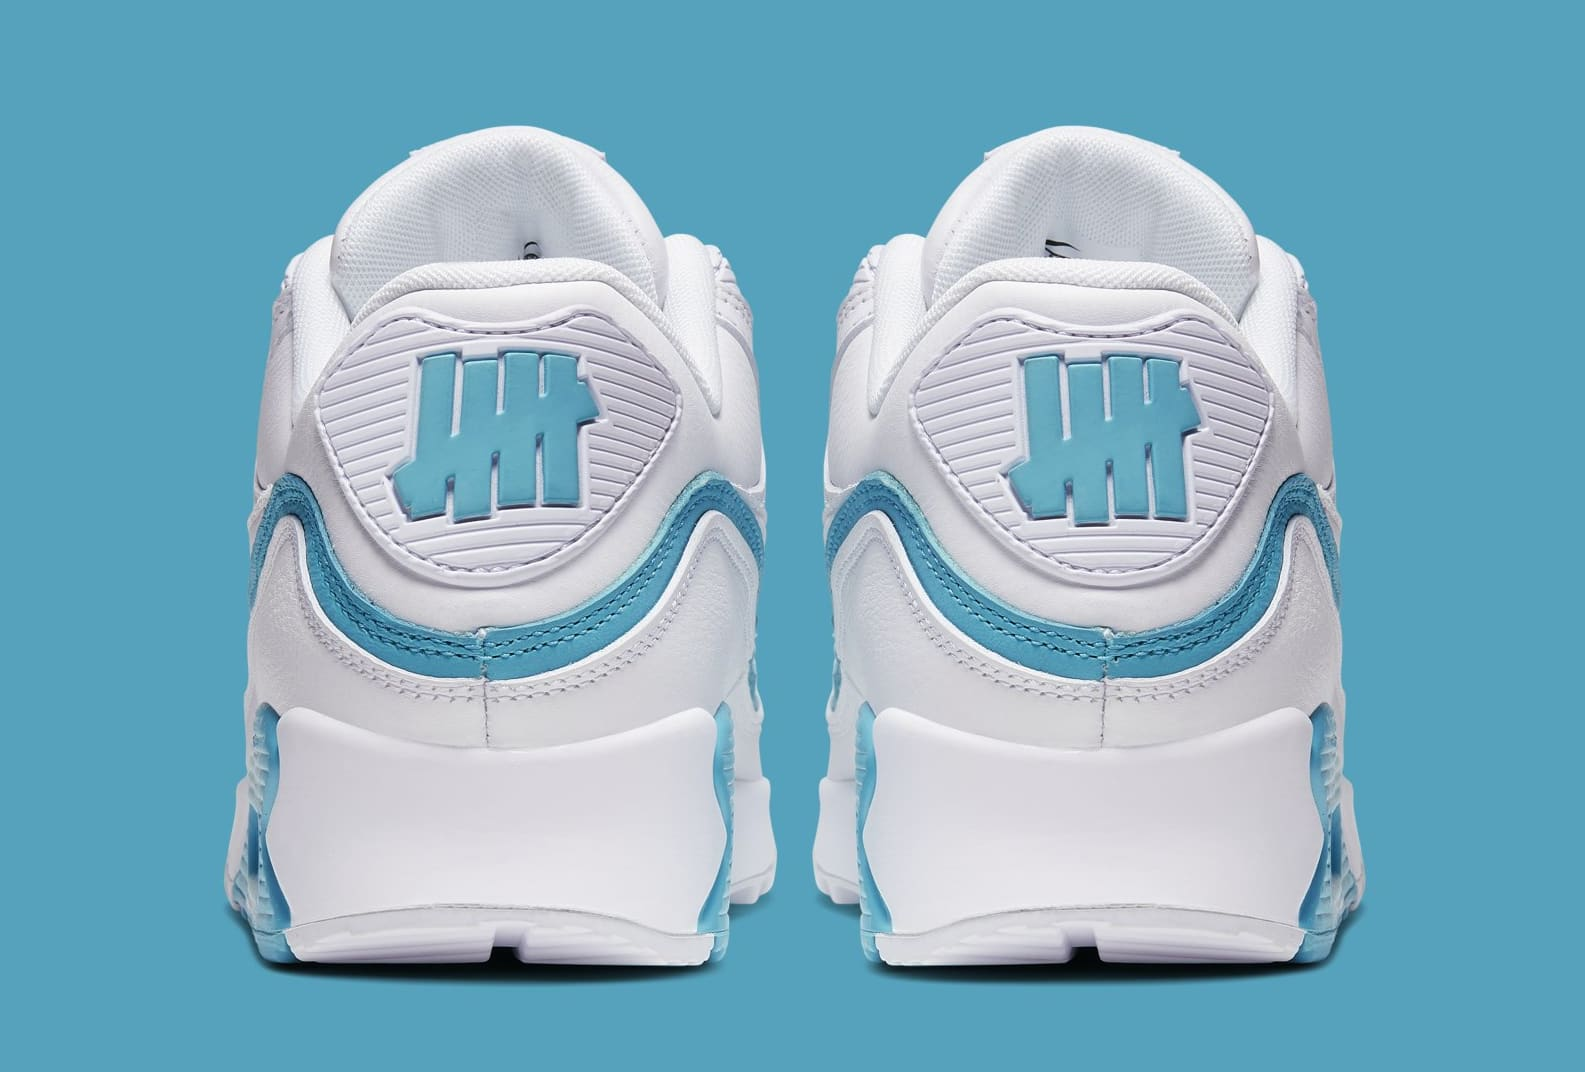 undefeated-nike-air-max-90-white-blue-fury-cj7197-102-heel